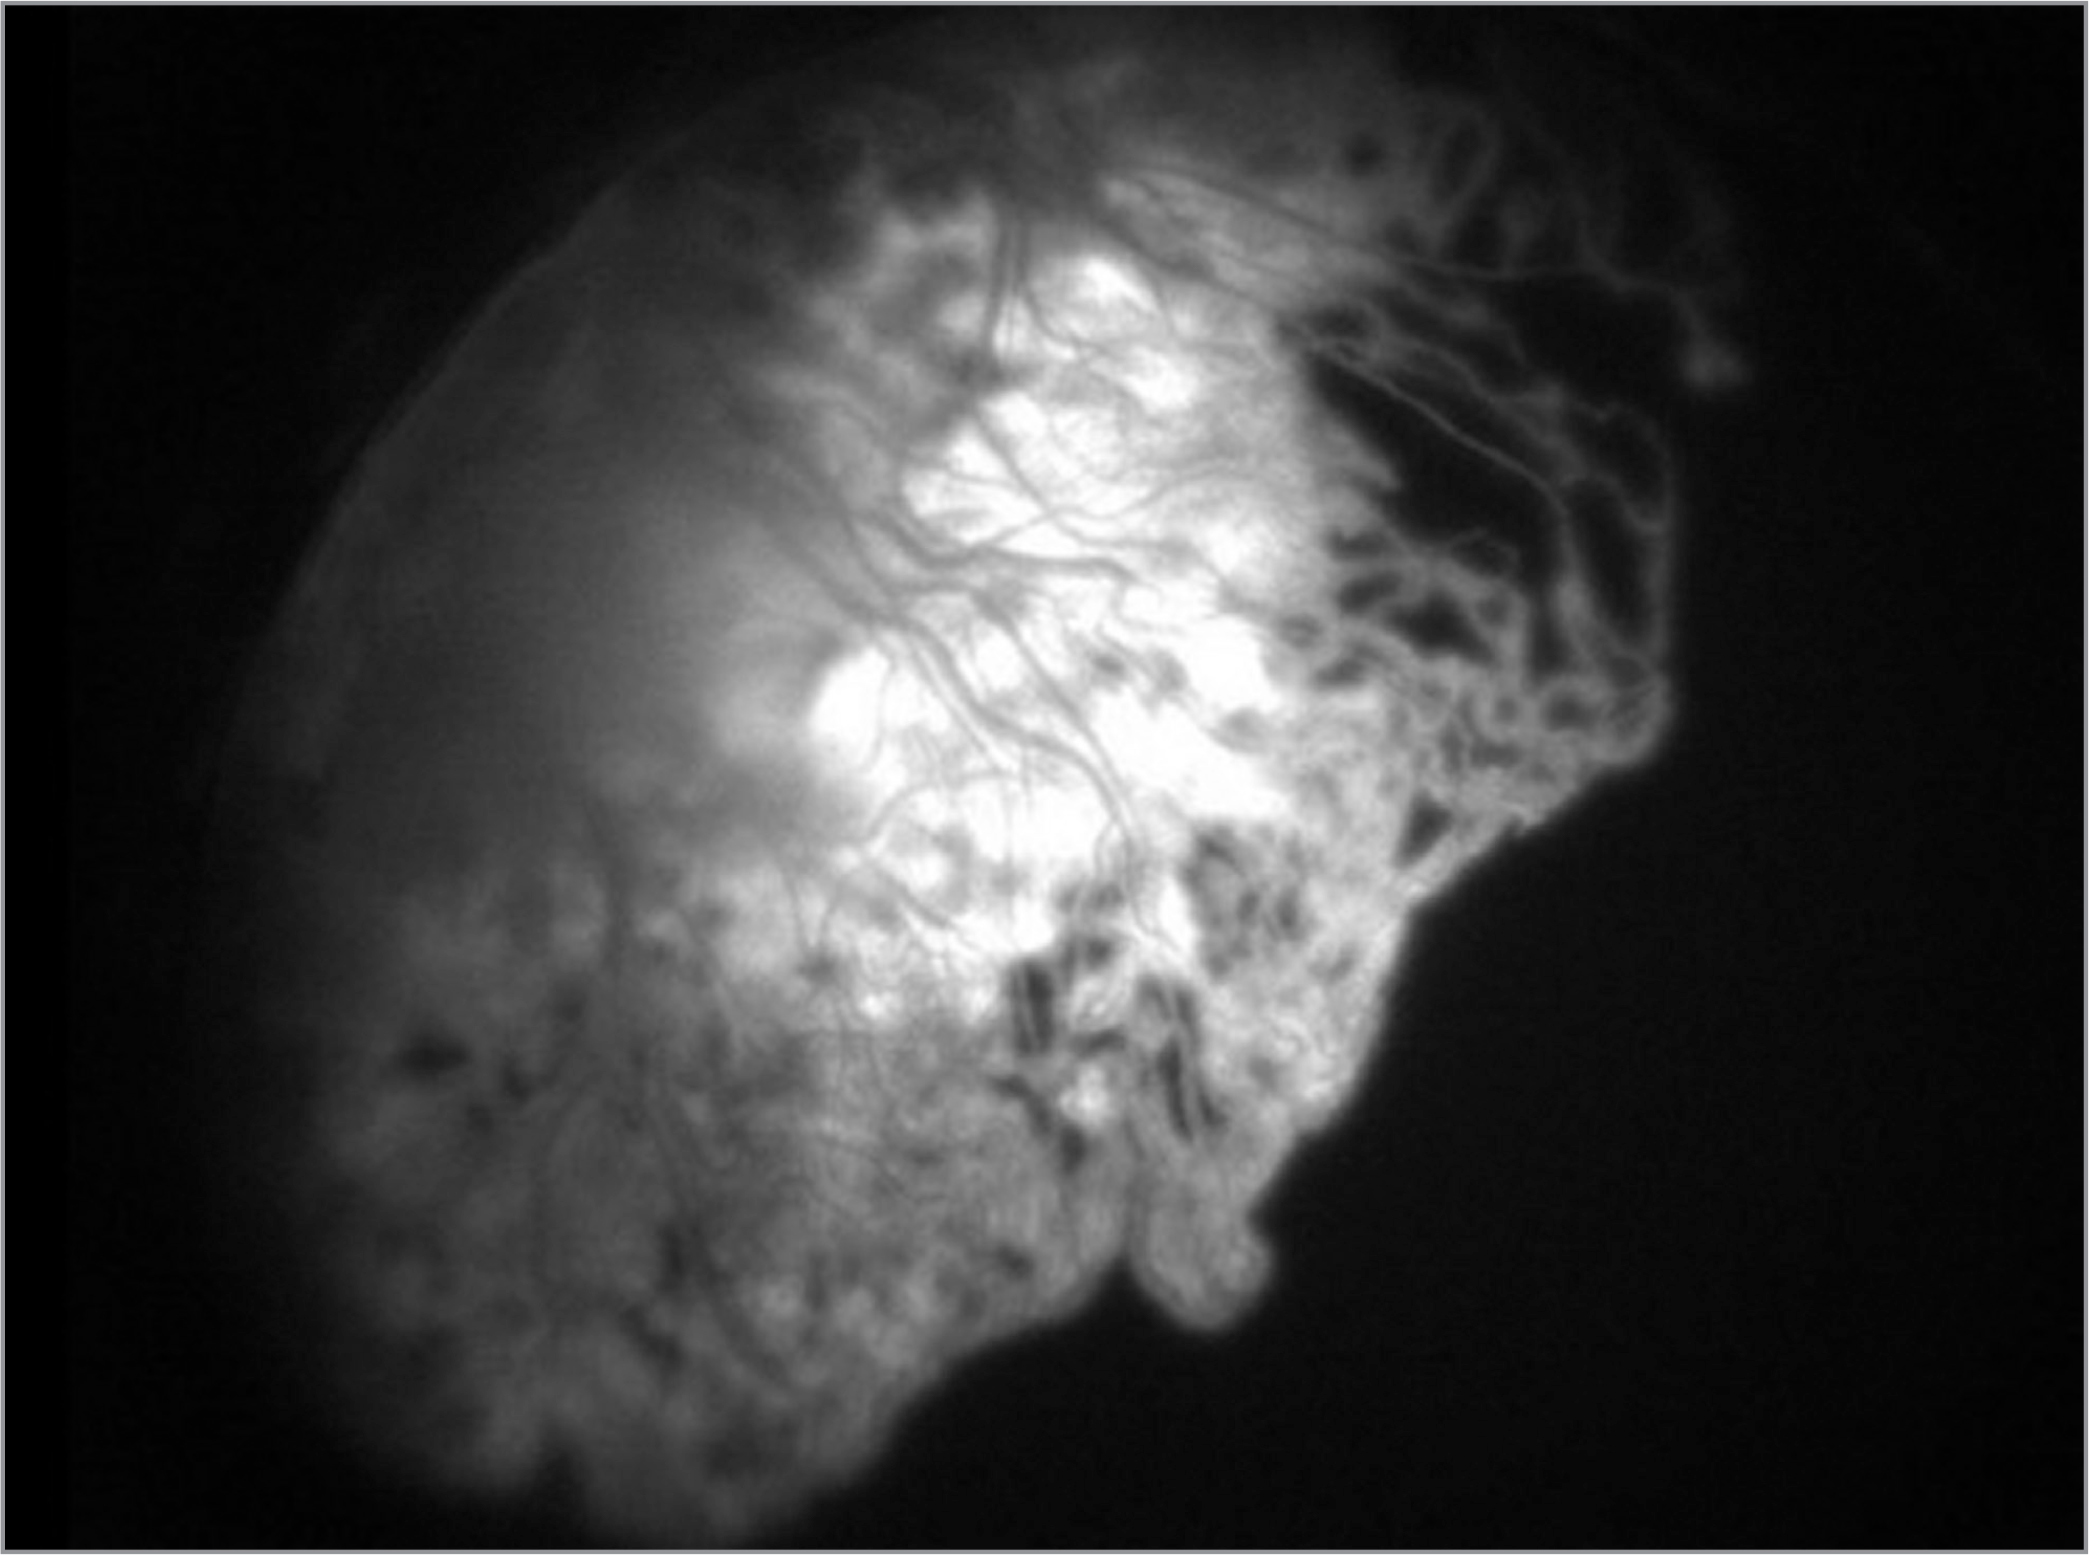 Fluorescein angiography demonstrated early filling with mid-phase staining of the fibrovascular membrane.